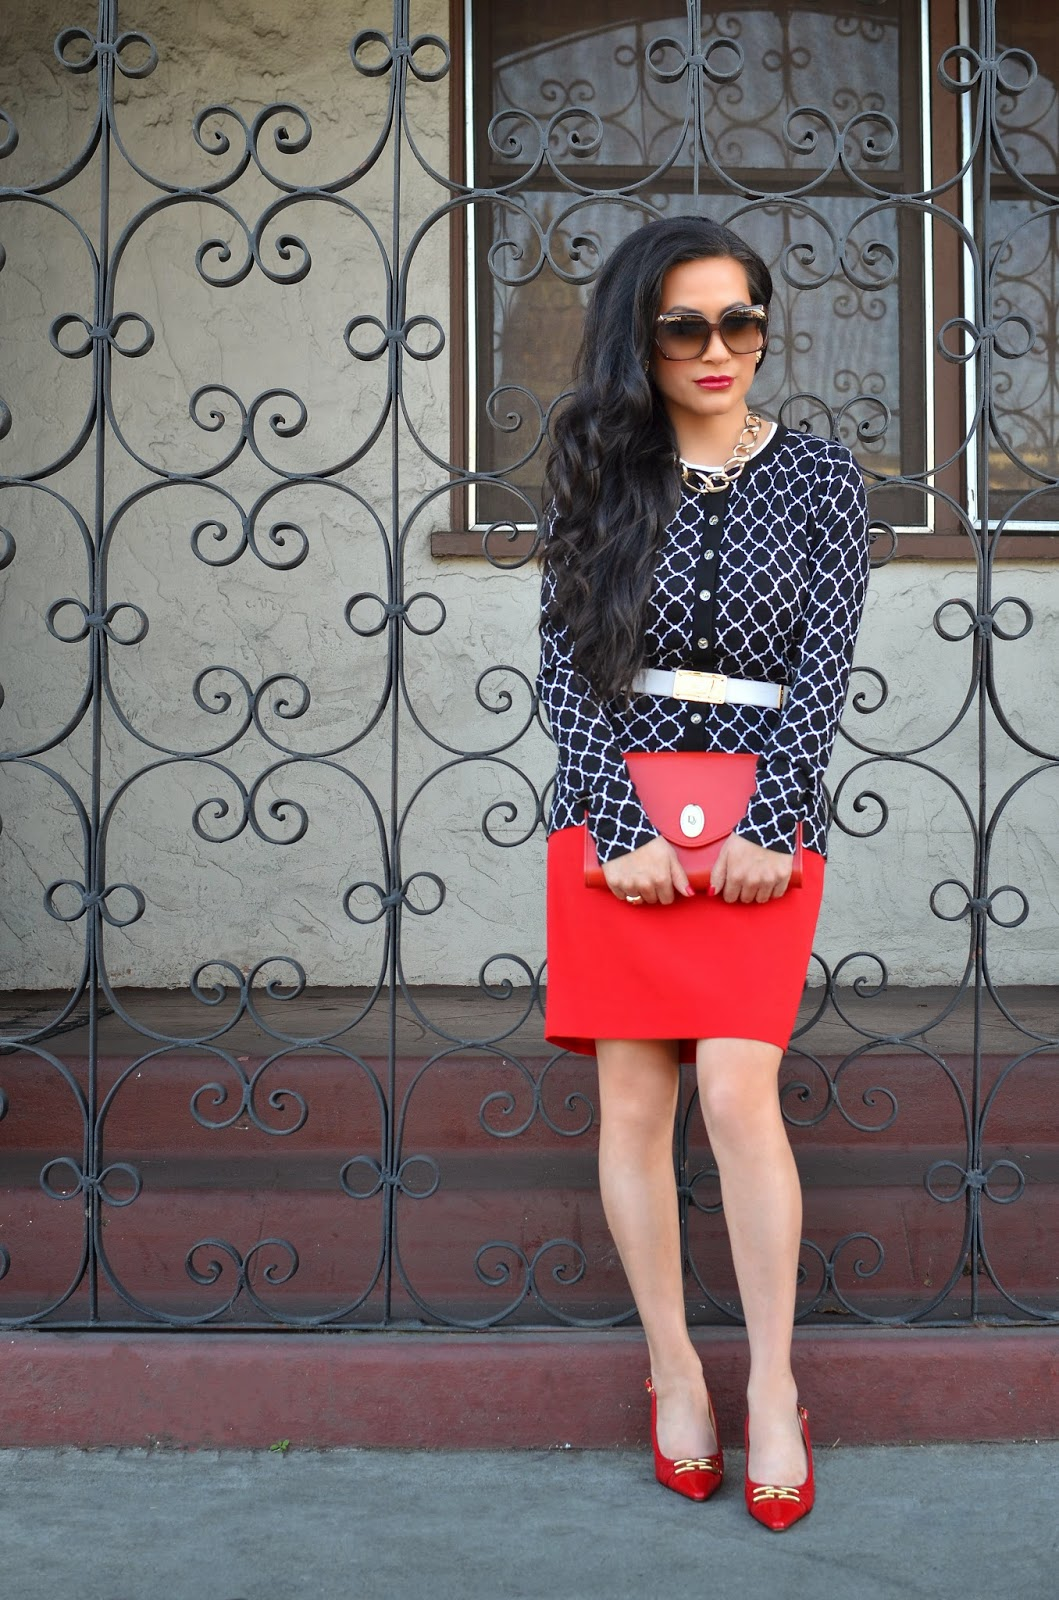 St. Thomas Gold Link Necklace St. John Knits White Belt Red Pencil Skirt Charter Club Navy Sweater Cardigan Macy's red pencil skirt Karen Scott Red and Gold Shoes Christian Dior Red Handbag Vintage Christian Dior Gucci Sunglasses